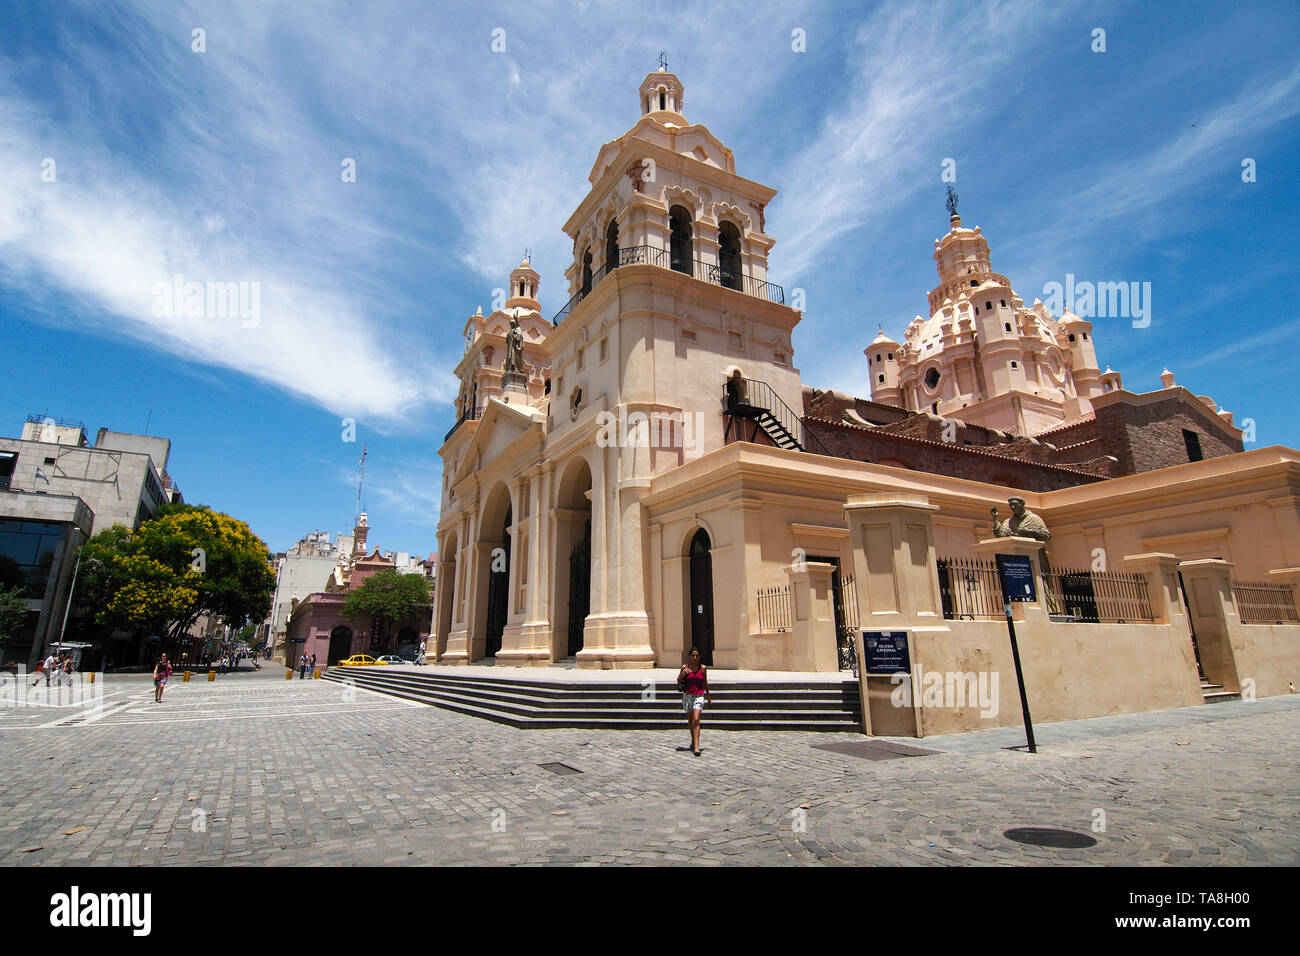 Cordoba City, Cordoba, Argentina - 2019: The Cathedral of Córdoba (Our Lady of the Assumption) is the oldest church in continuous service in Argentina. - Stock Image